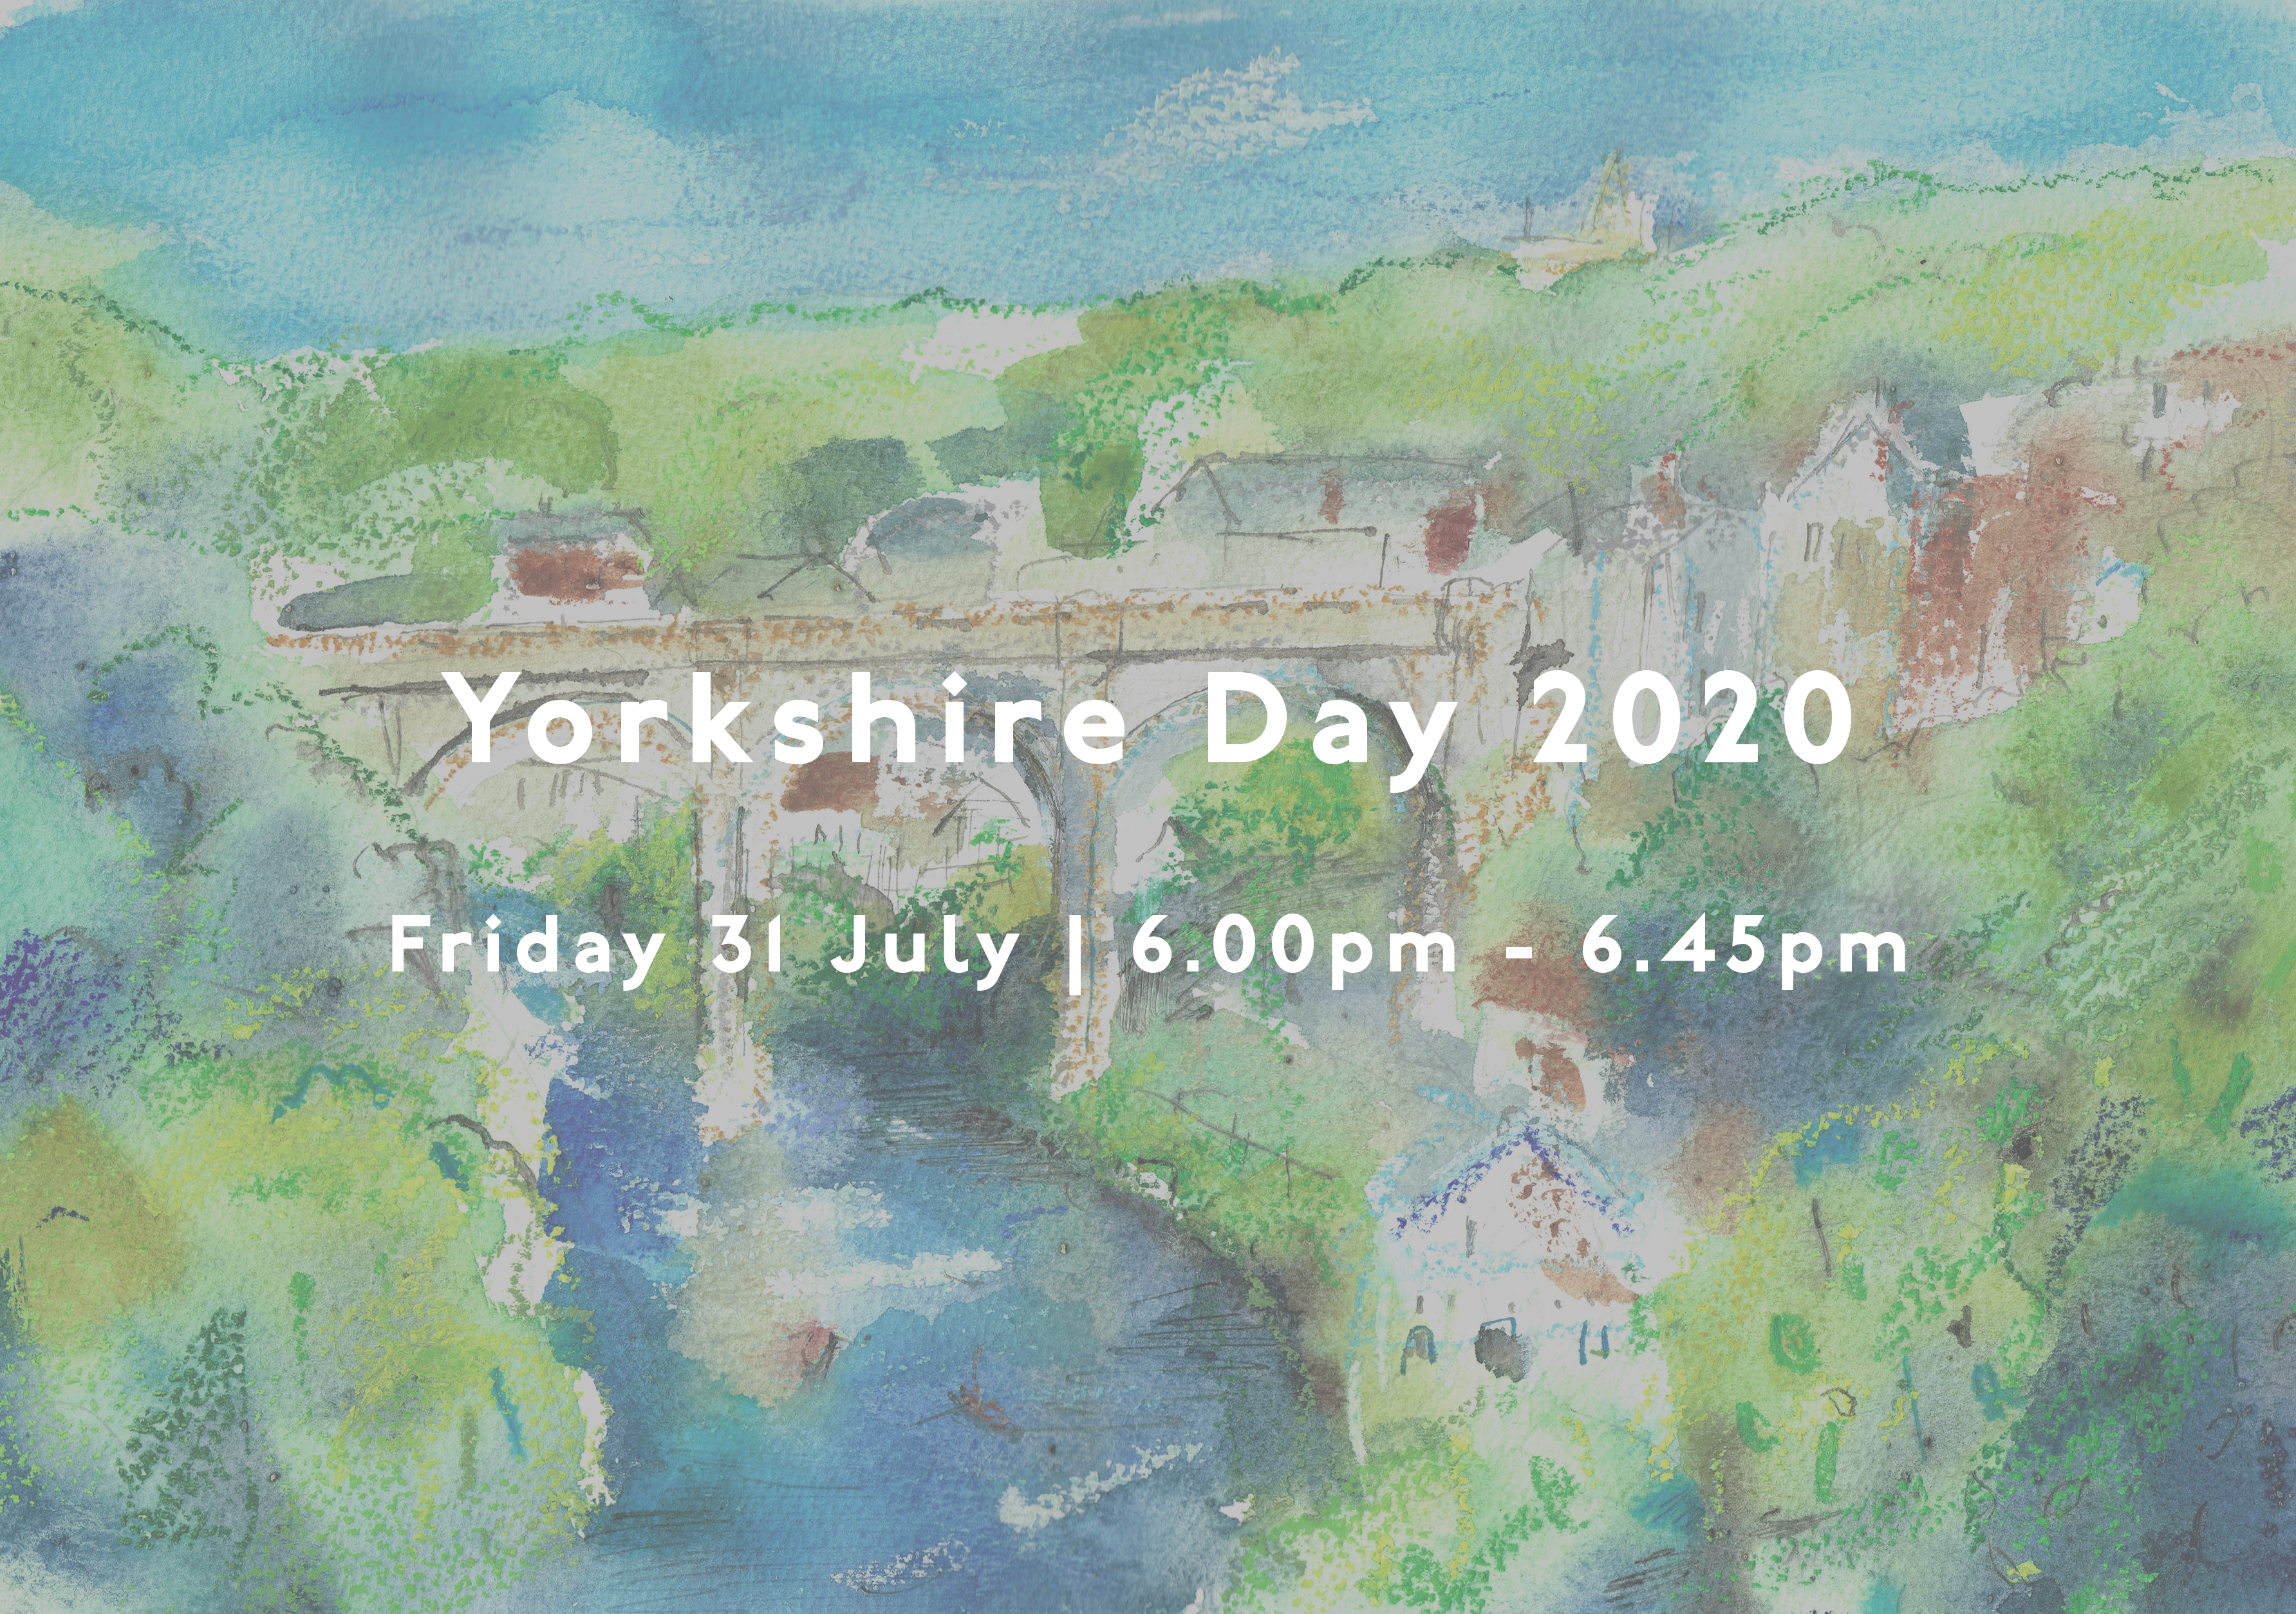 Our partners BPIF and CDI's Virtual Yorkshire Day 2020